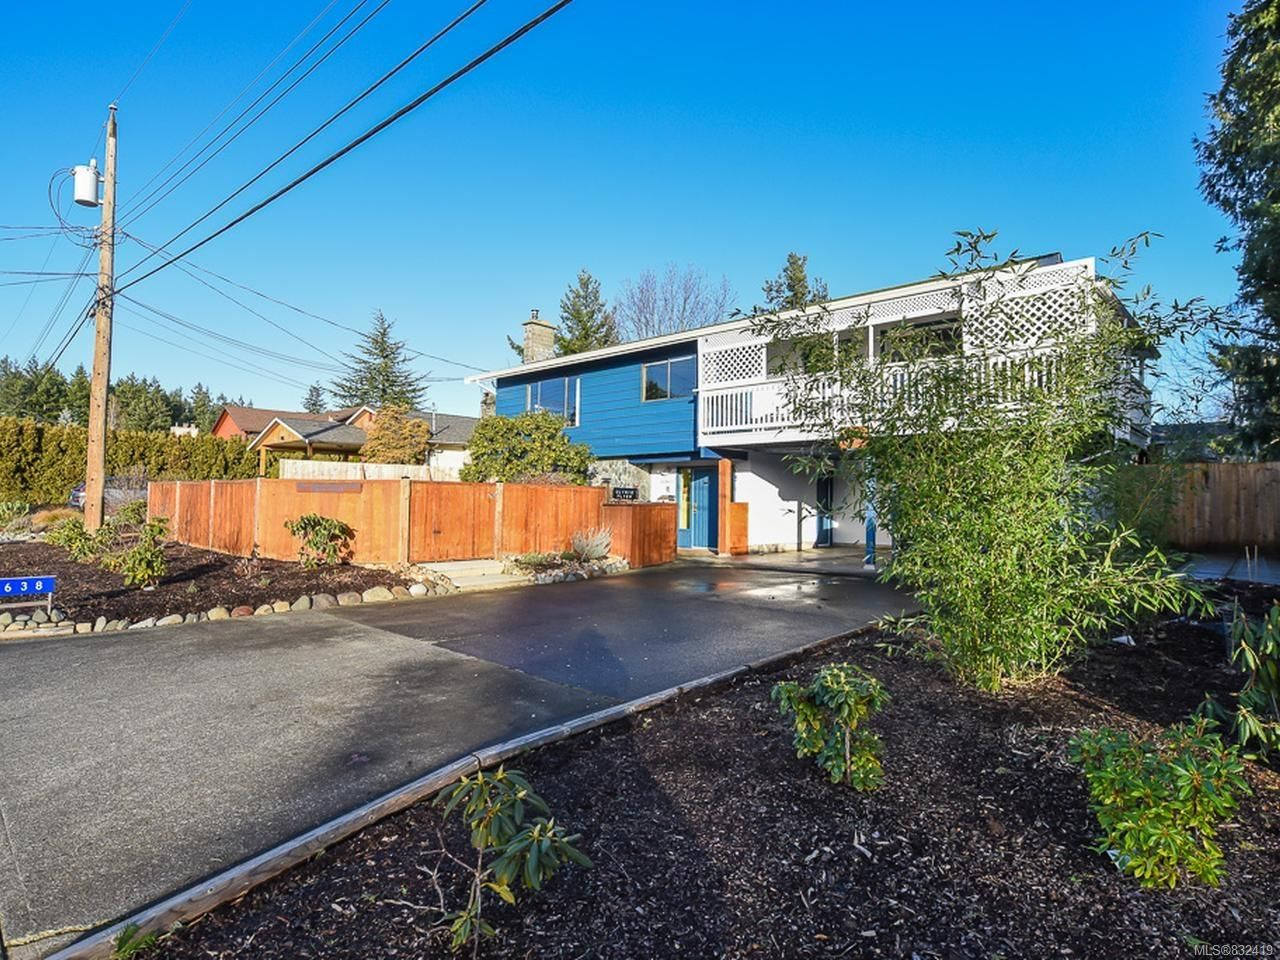 Main Photo: 638 Woodland Dr in COMOX: CV Comox (Town of) House for sale (Comox Valley)  : MLS®# 832419